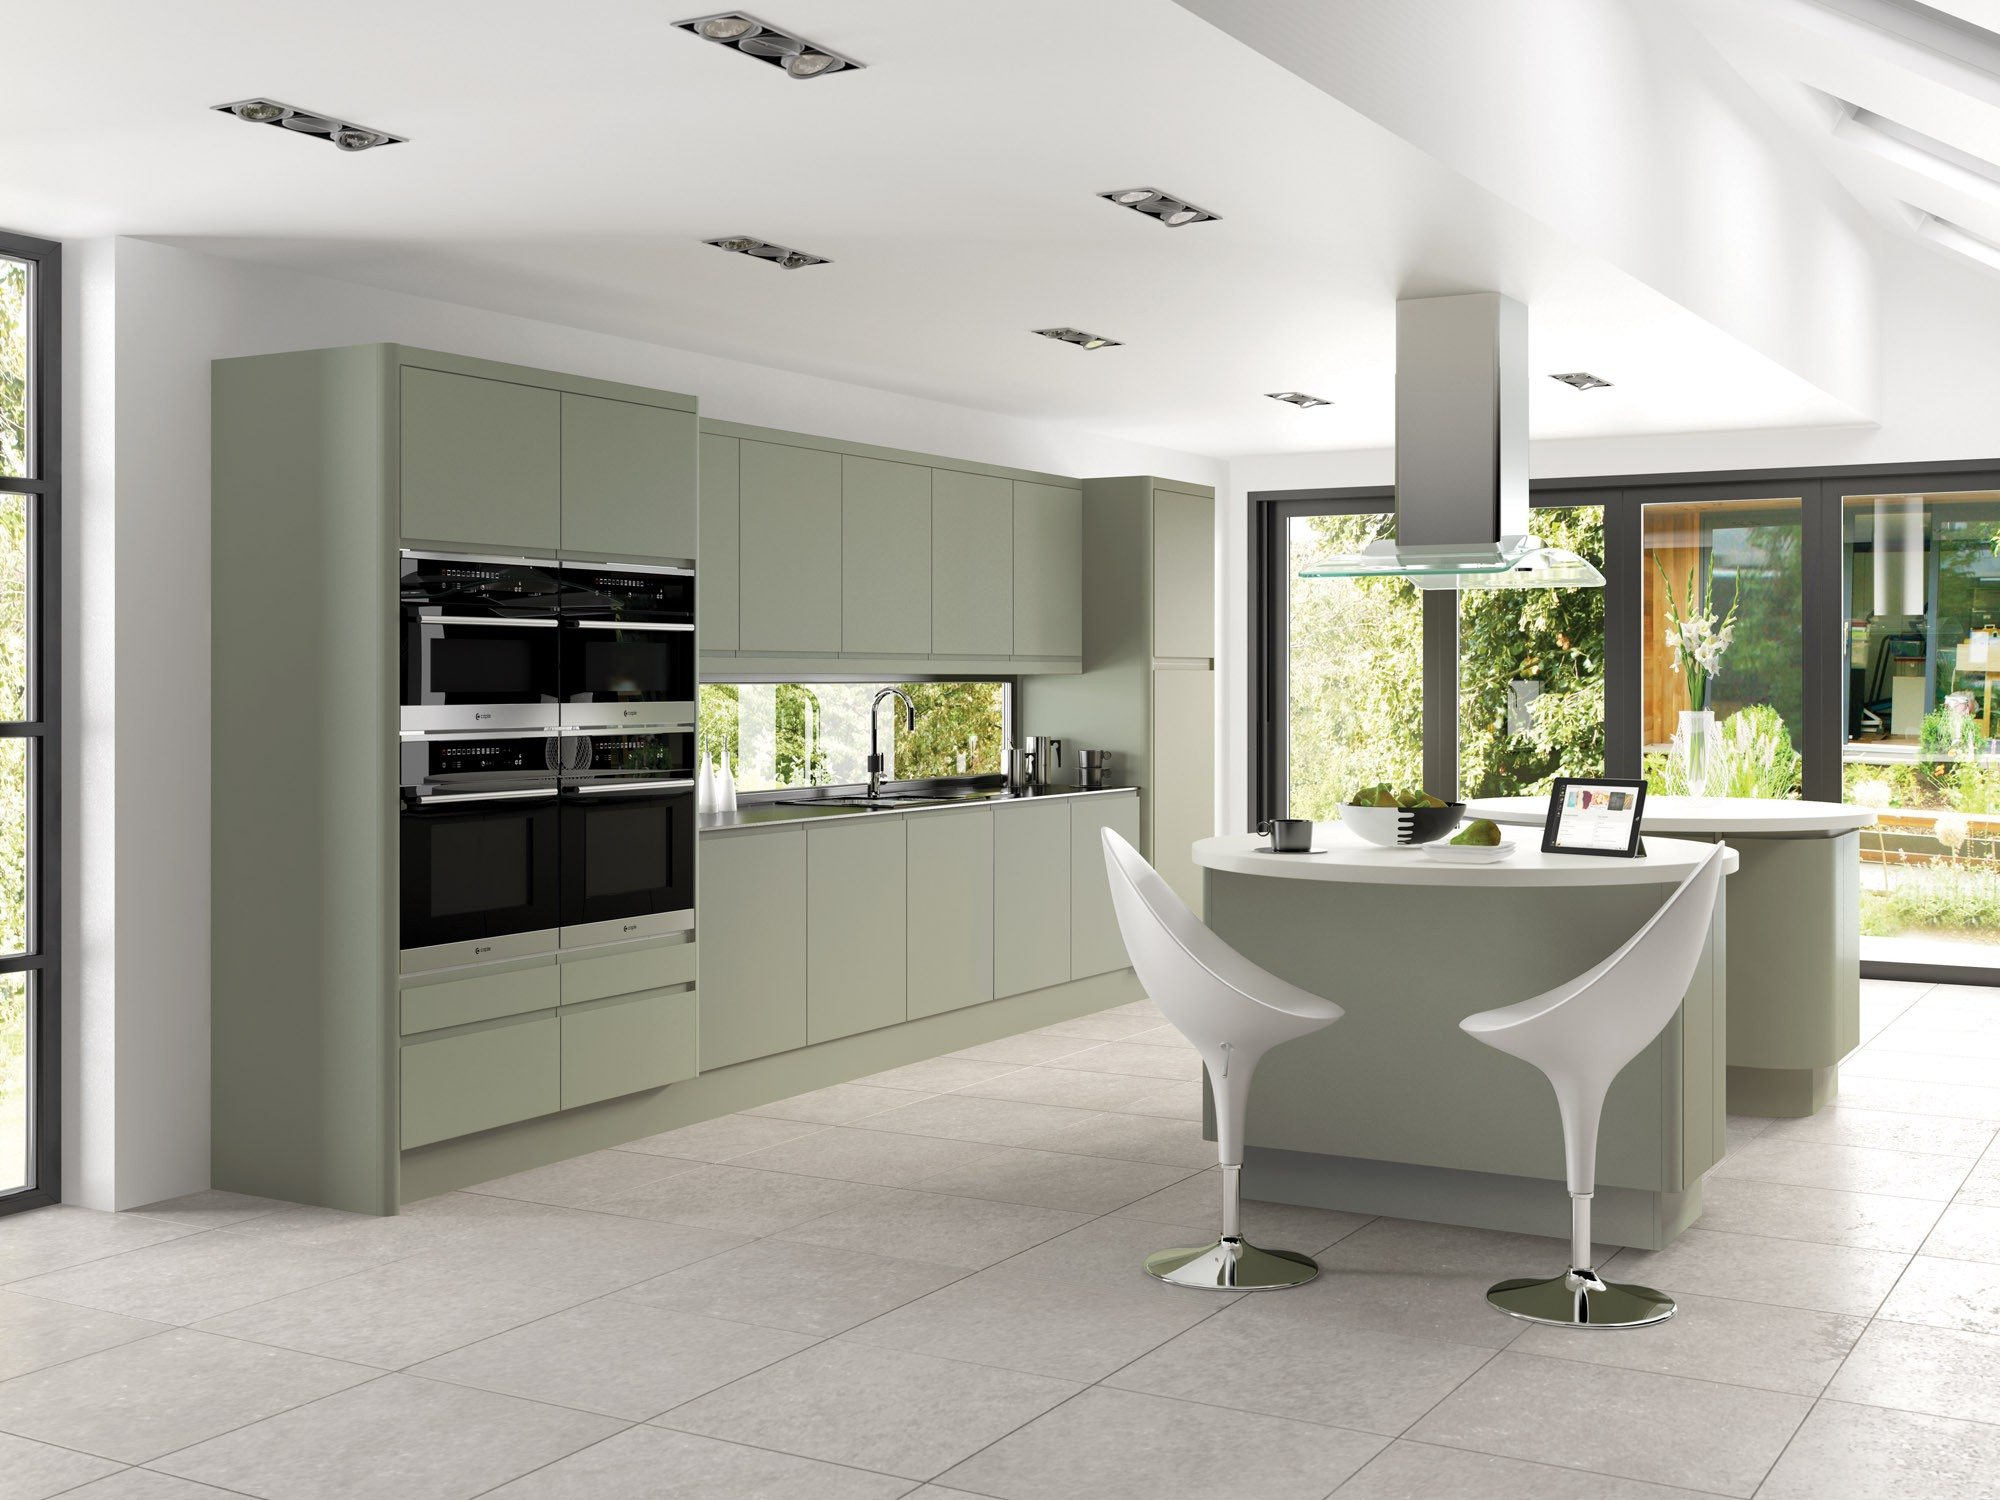 Integra regal kitchens in essex - Designer kitchens direct sheffield ...